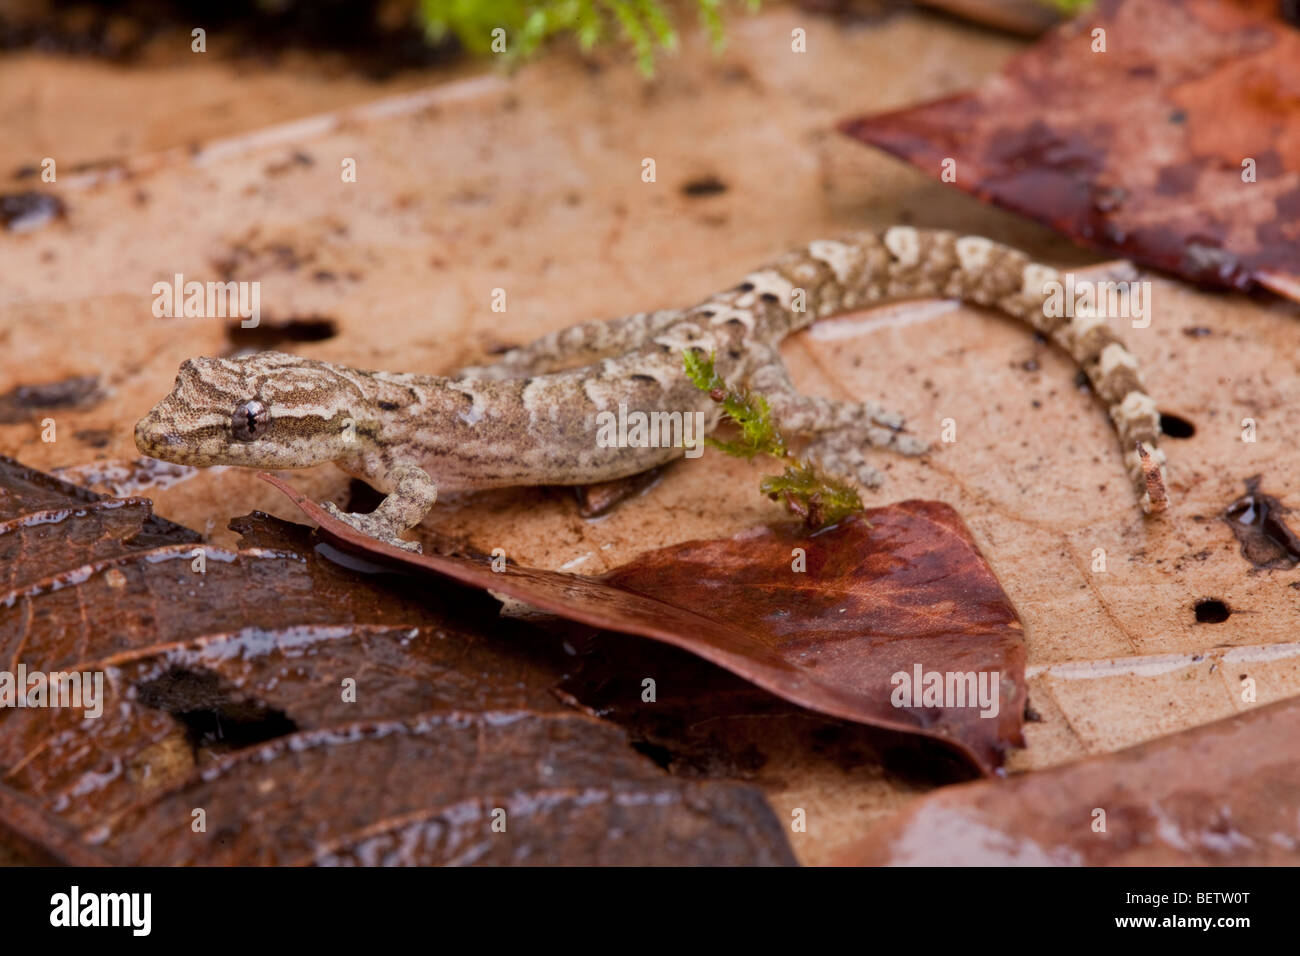 Mourning gecko parthenogenesis asexual reproduction